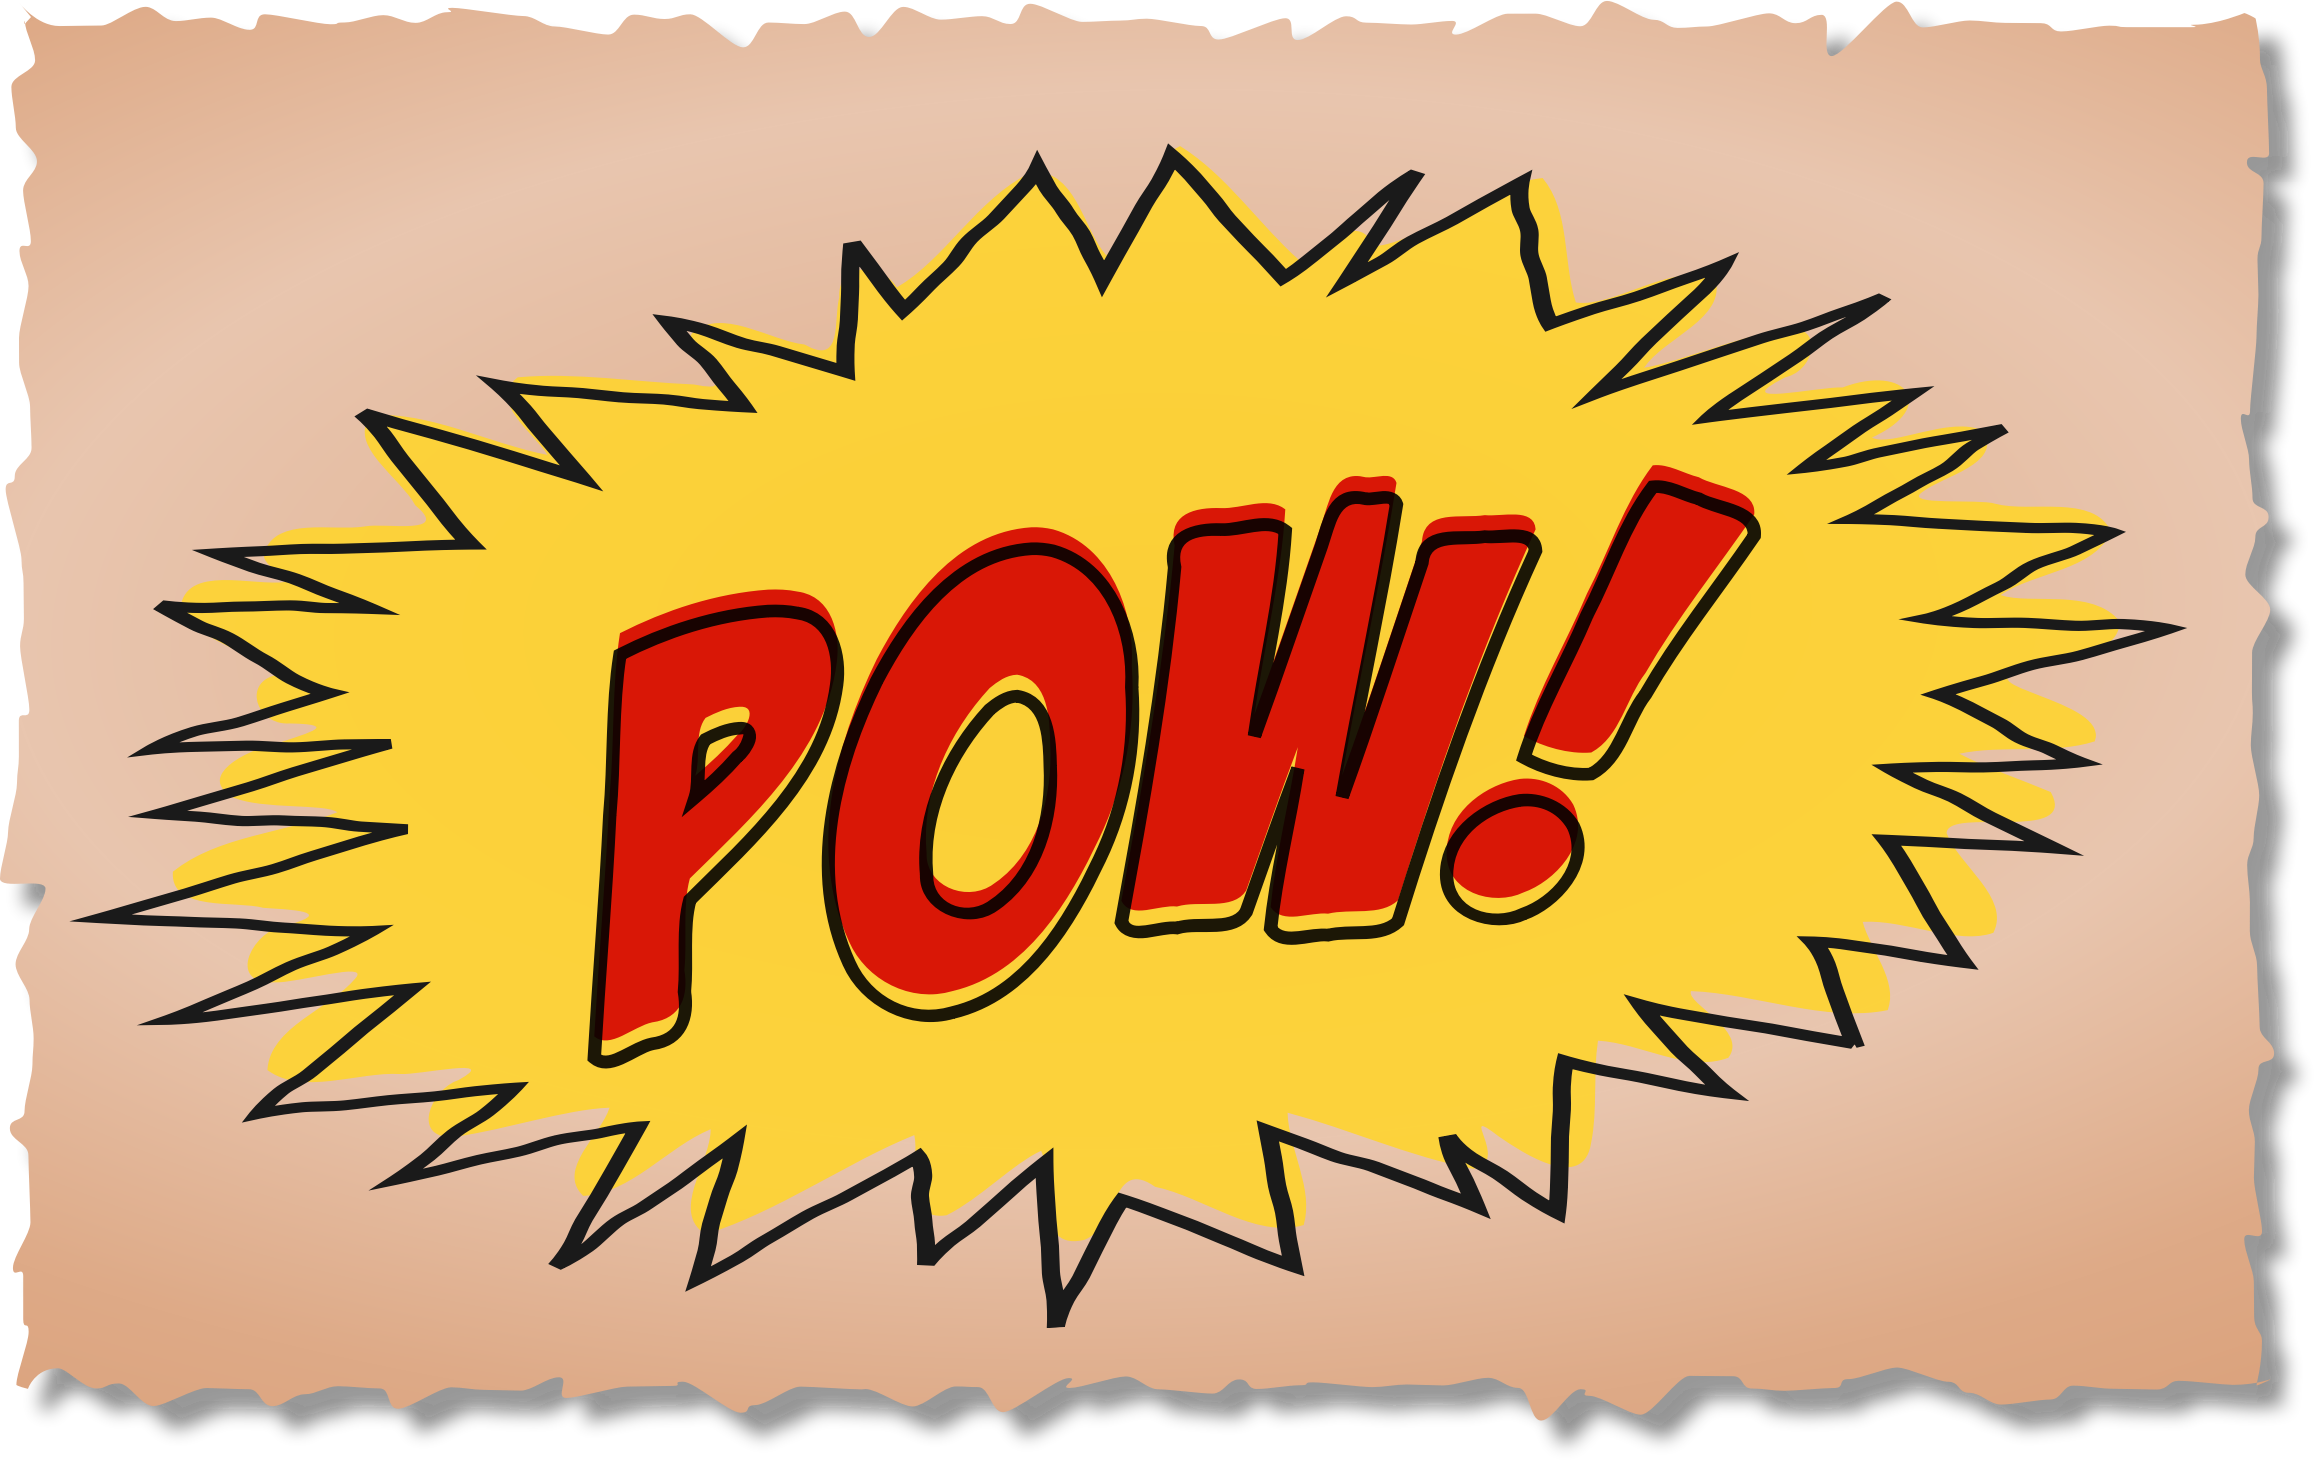 Pow comic book sound effect by flrns